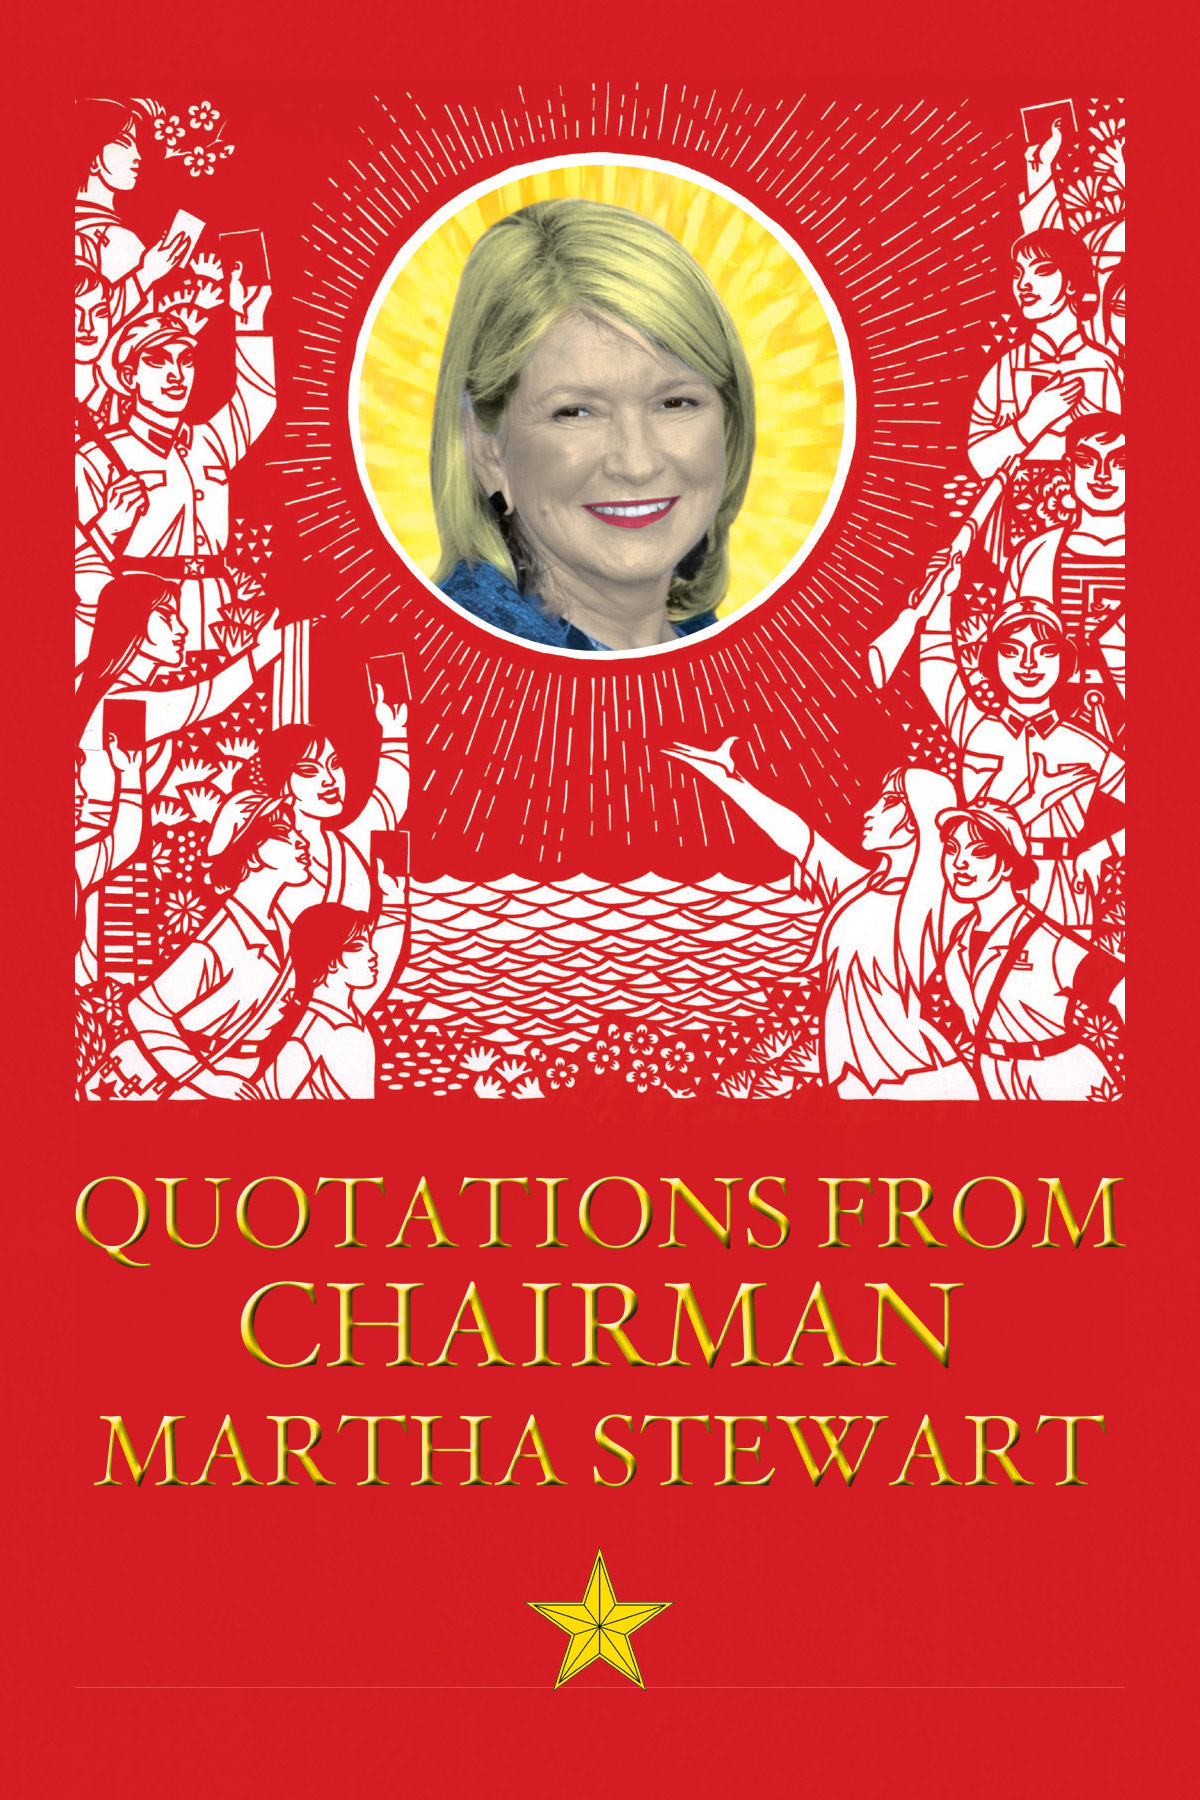 Quotations From Chairman Stewart | Gift Books Best Quotations from Martha Stewart on Business and Entertaining.  The Little Red Book, Quotations From Chairman Stewart contains the essence of Martha Stewart's thoughts on business and entertaining in her own words. Martha Stewart, one of the best known and most successful woman executives, inspires and instructs with her trademark practicality, elegance and enthusiasm.